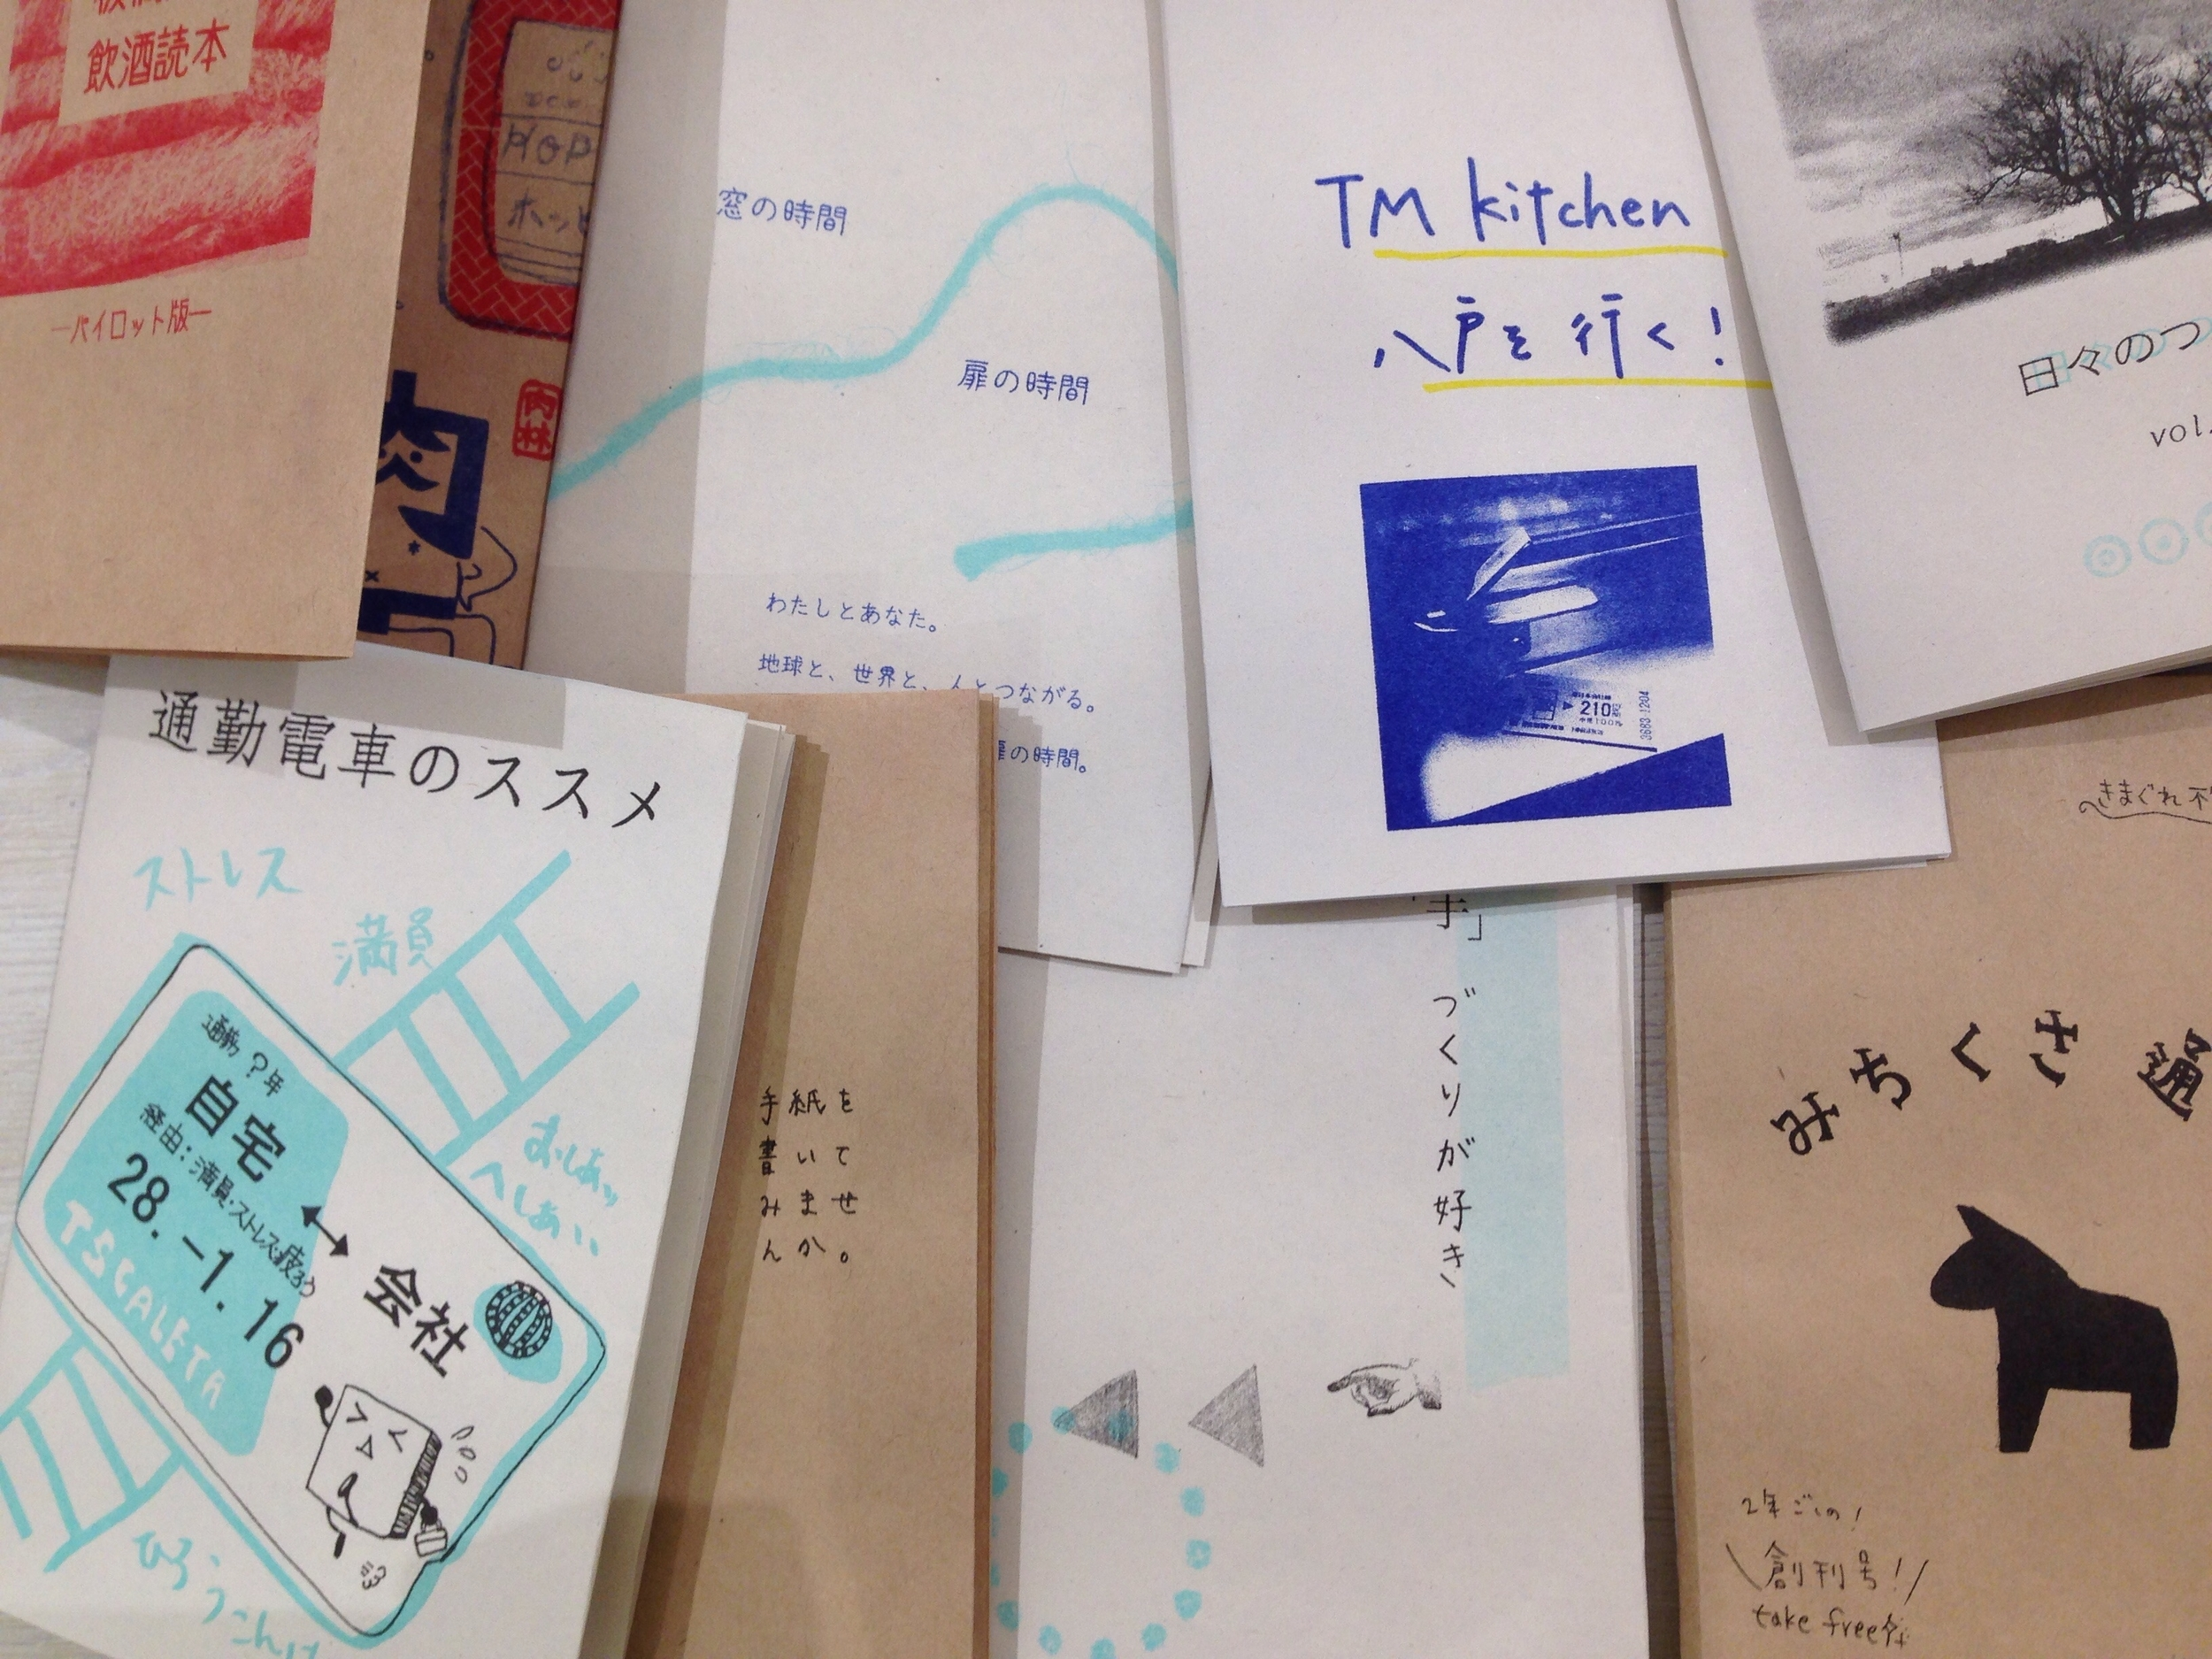 Lots of different fresh new zines from everyone in class!